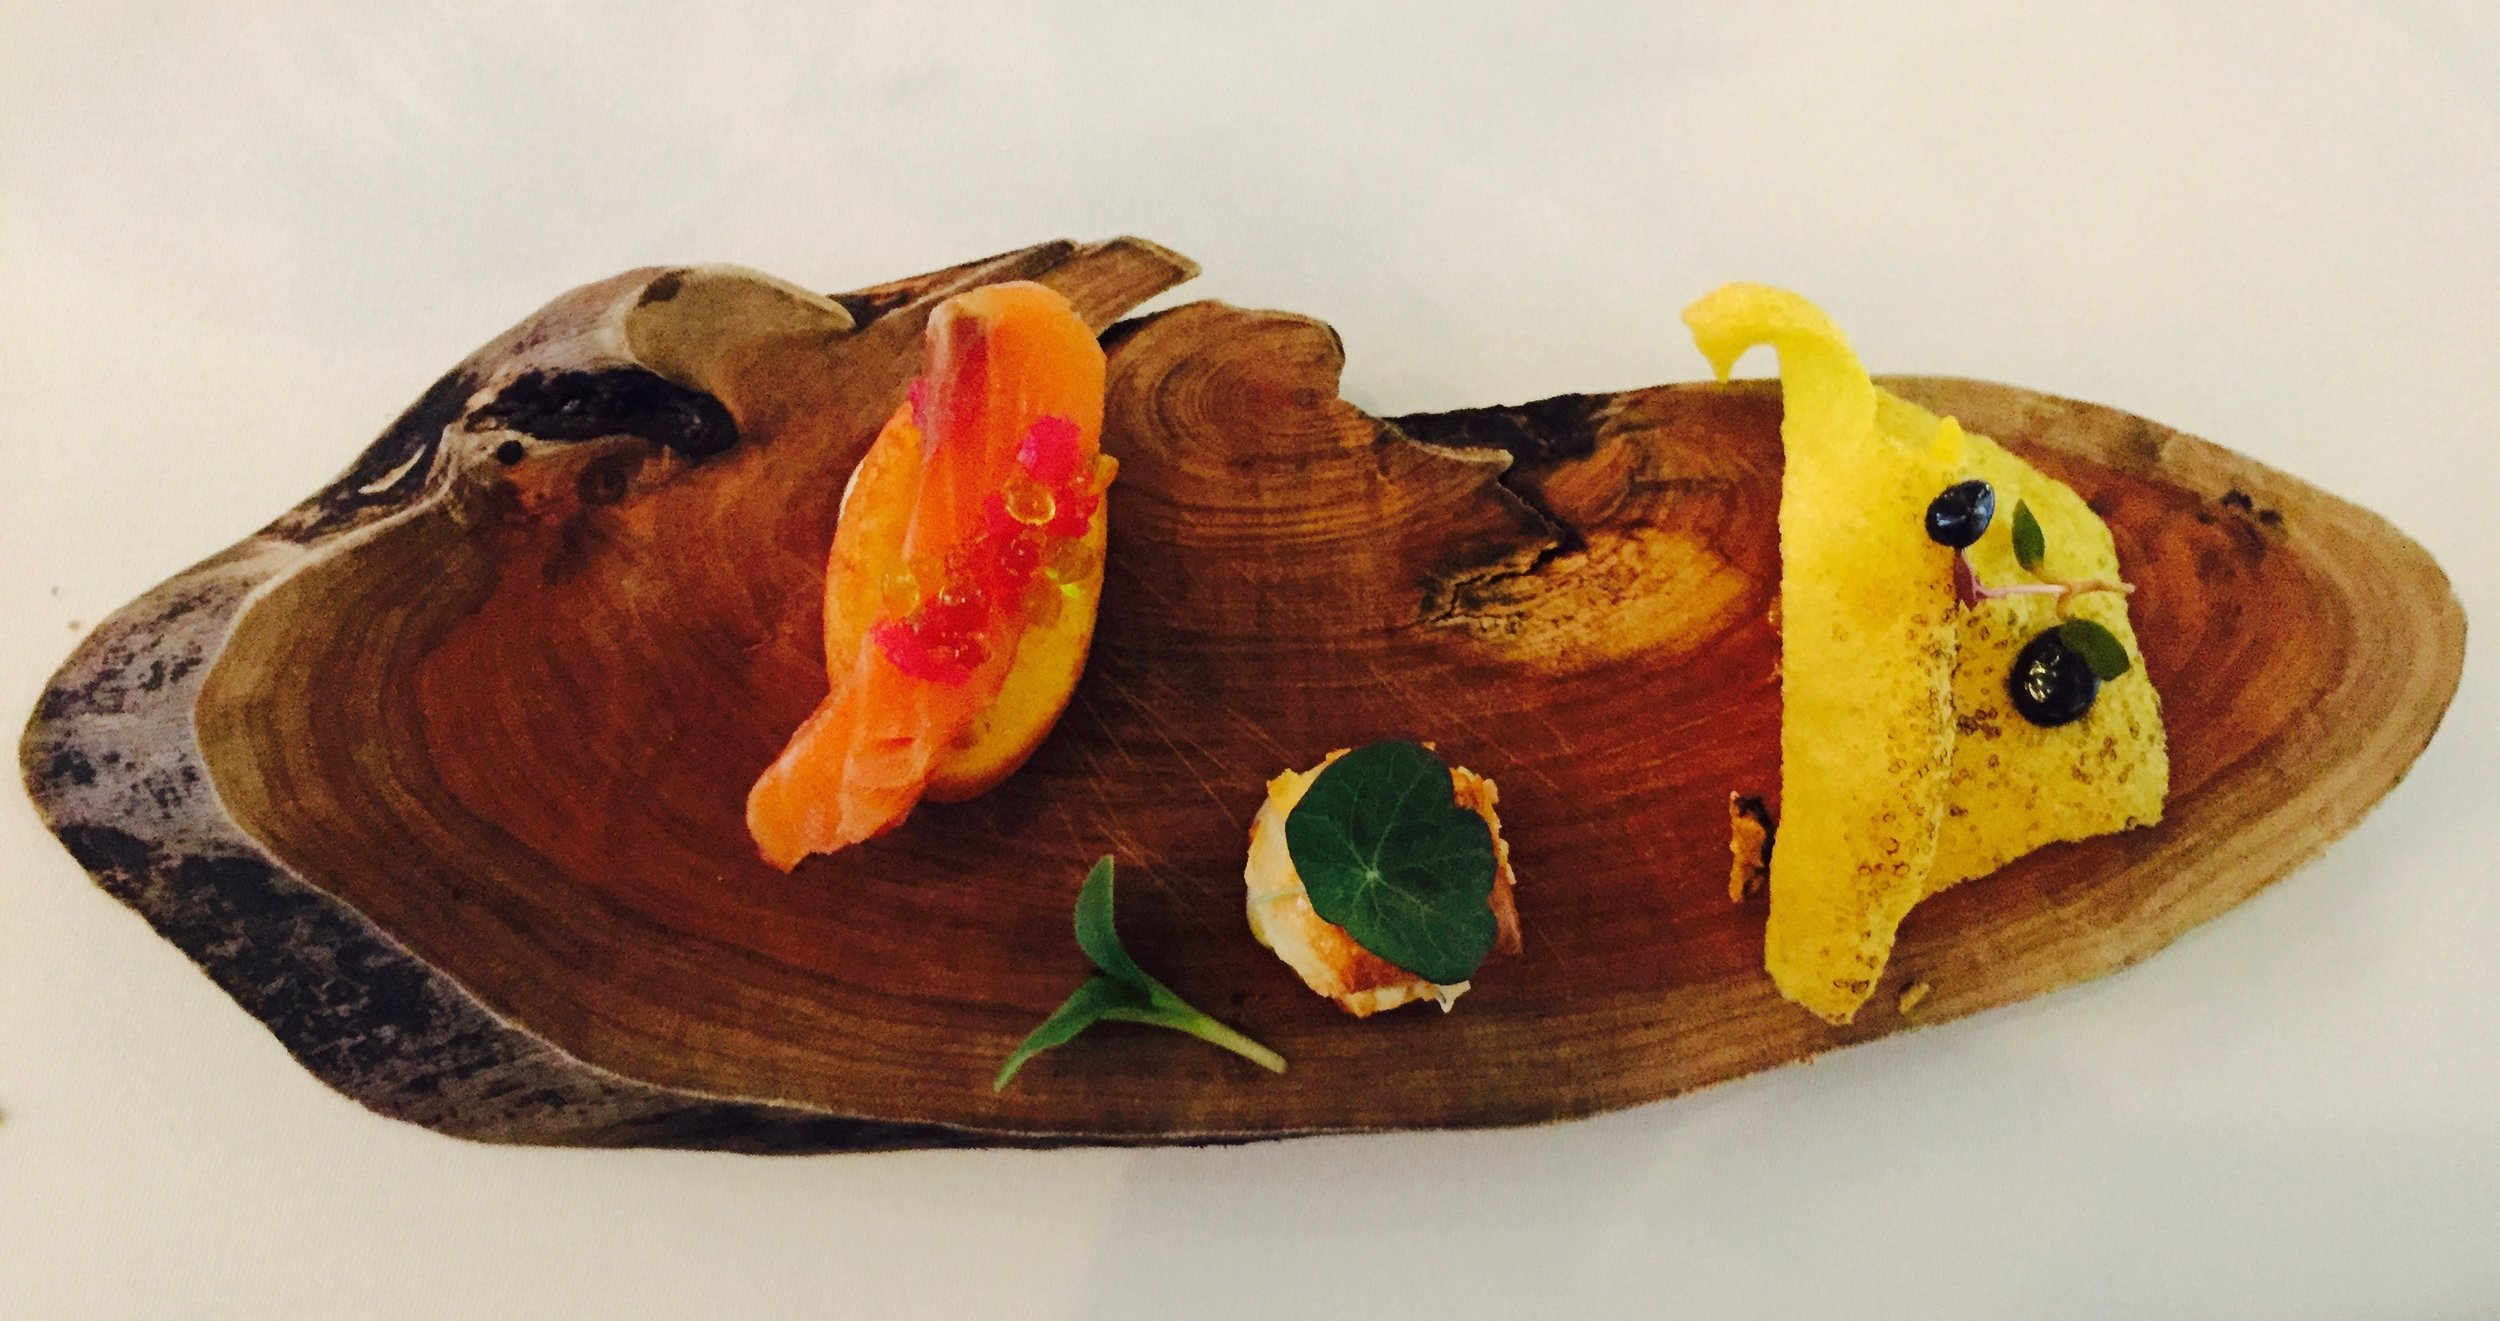 The meal presentation at Senses was truly art!